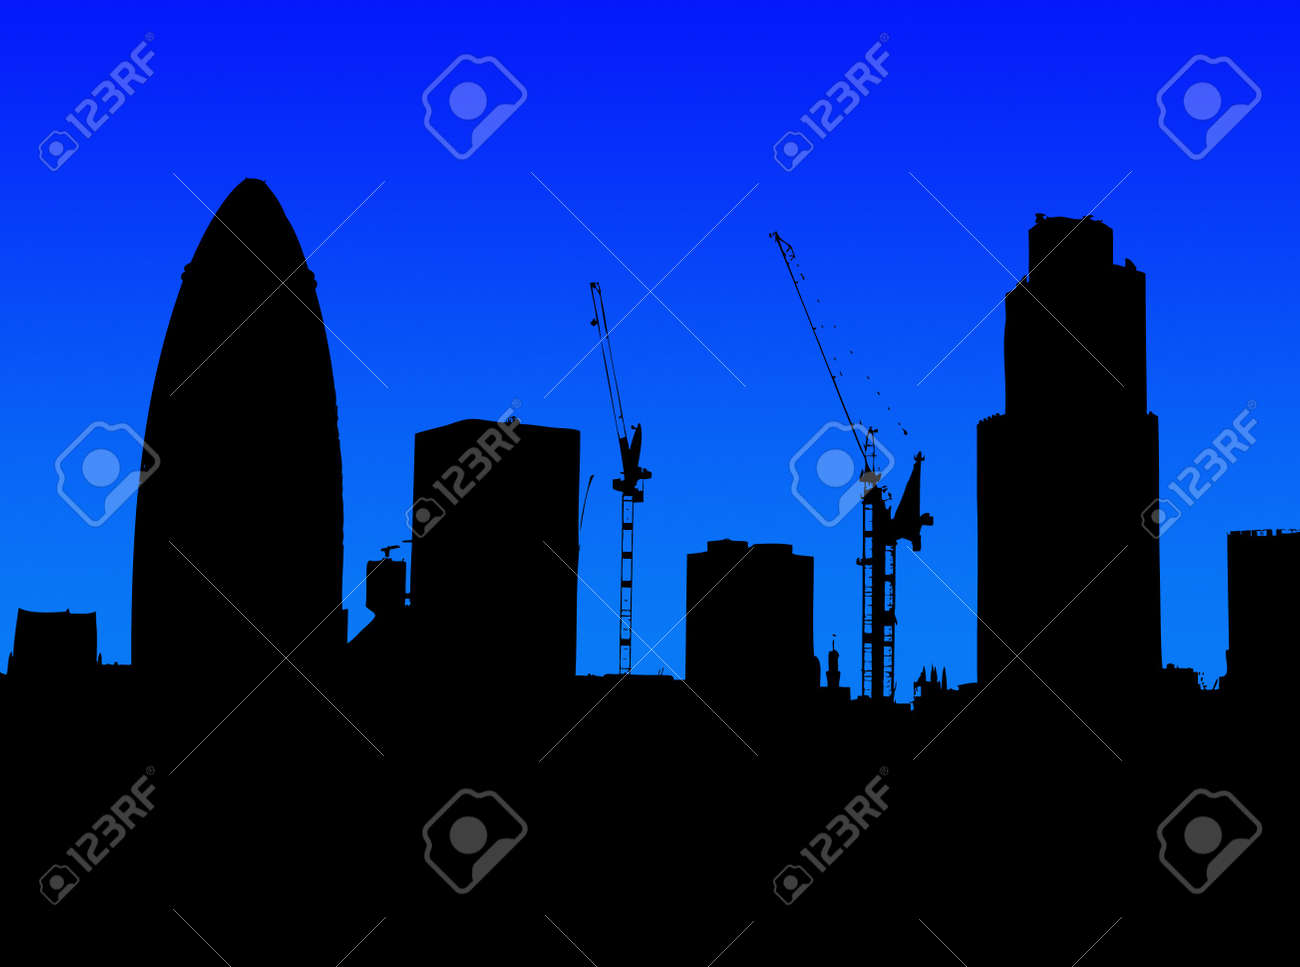 A Simple Silhouette Of The Skyline London Featuring Gherkin Stock Photo